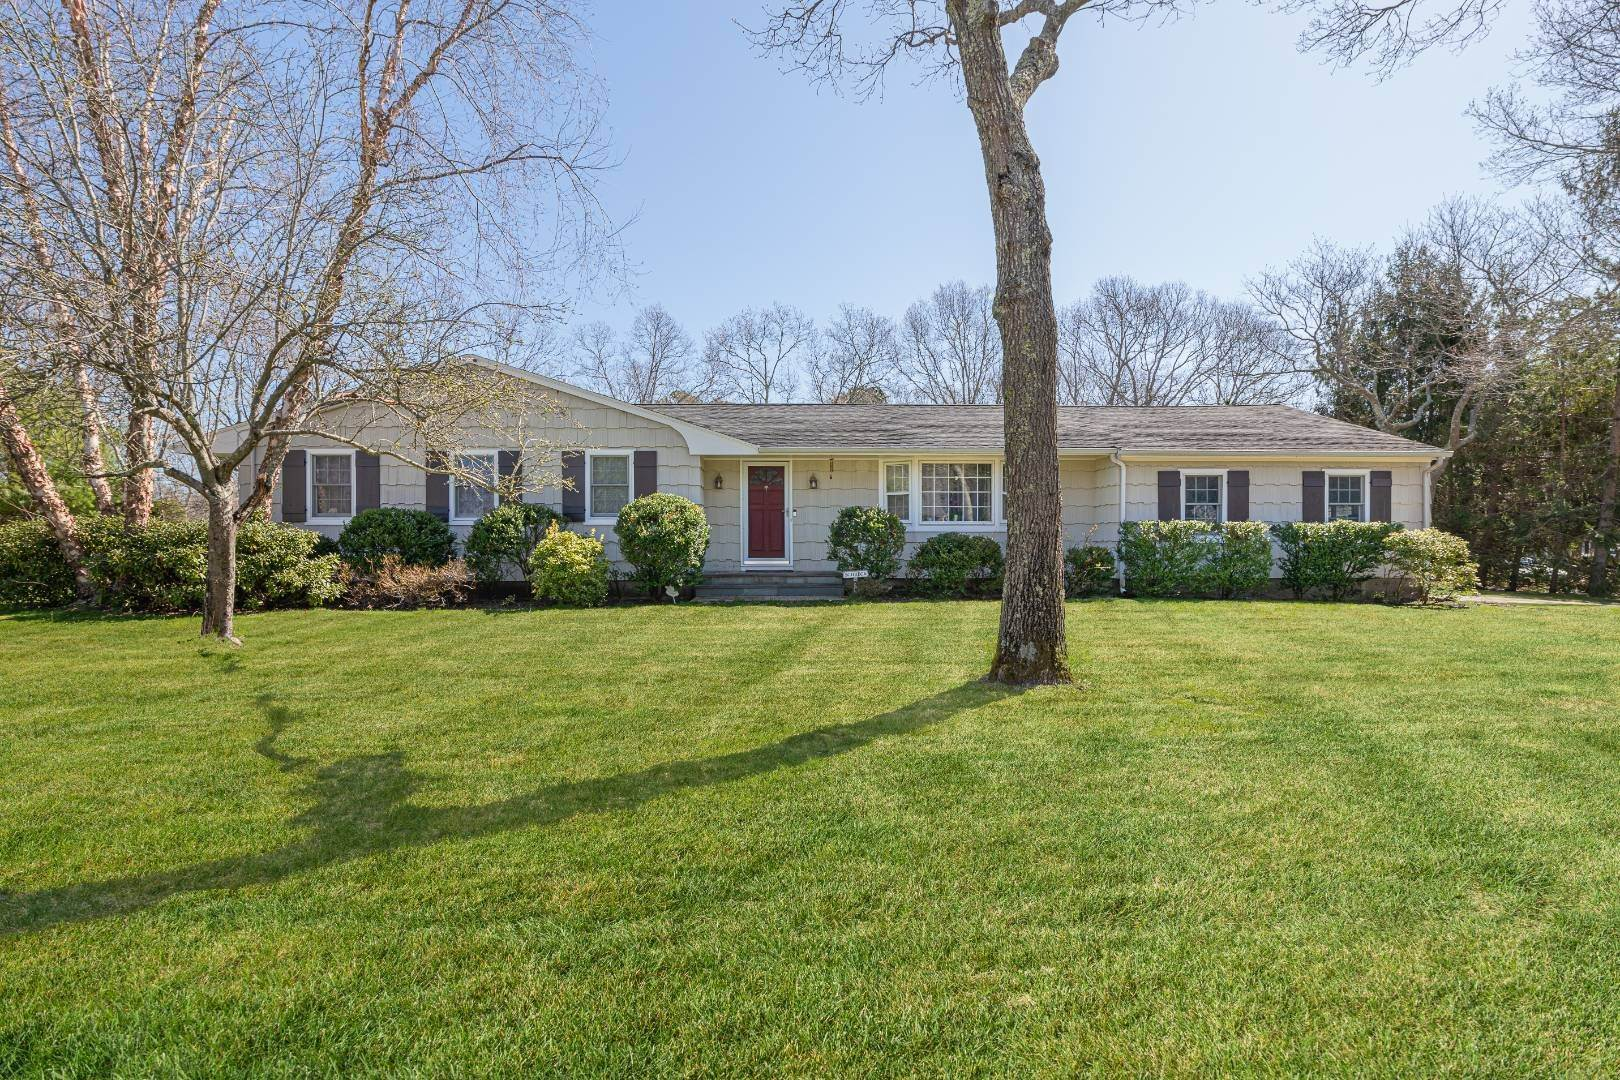 Single Family Home pour l Vente à Desirable Tiana Shores Ranch With Pool In East Quogue 15 Deerfeed Path, East Quogue, NY 11942